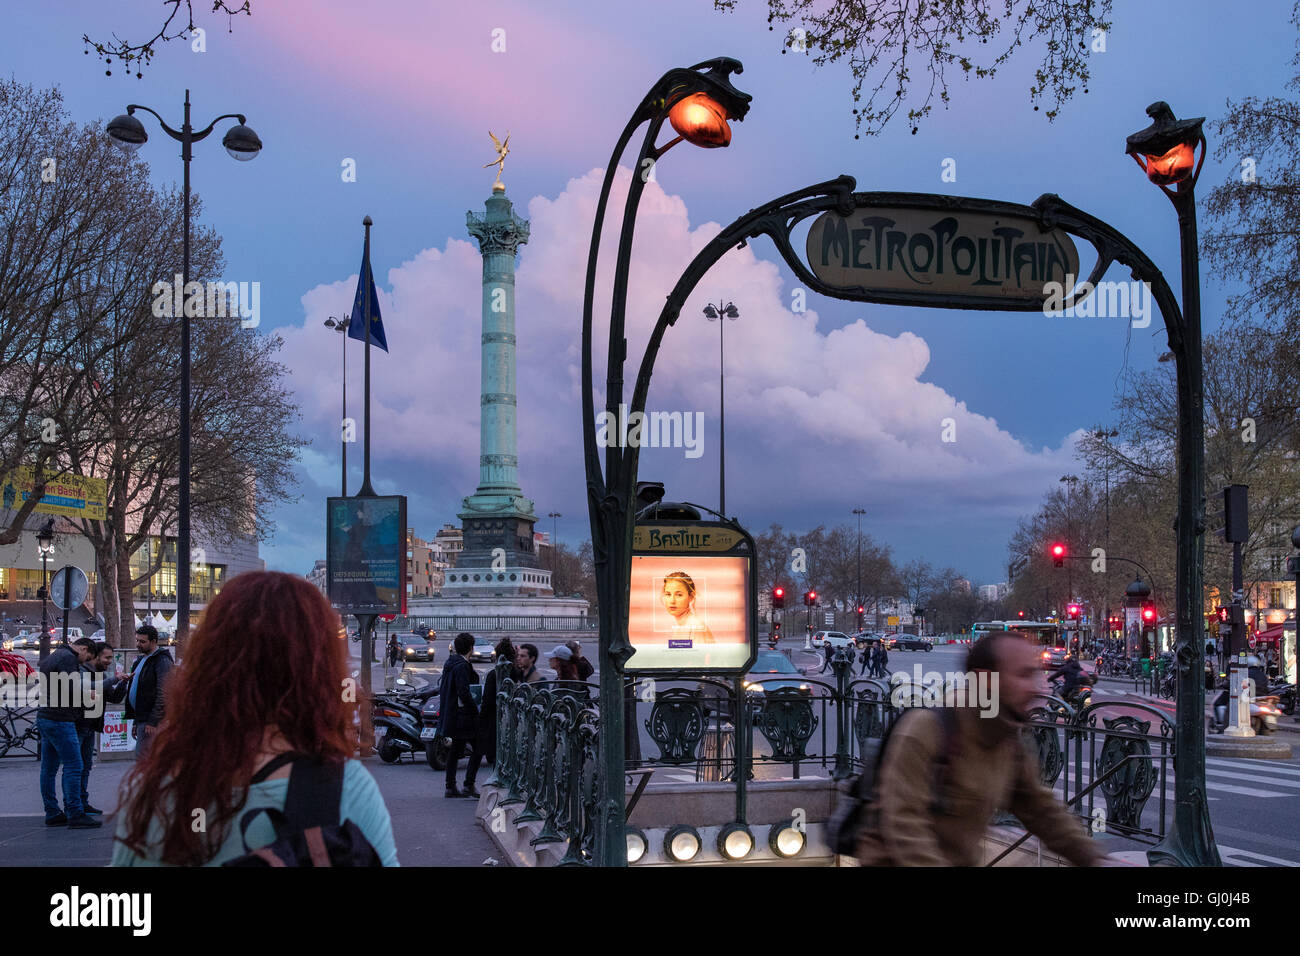 the entry to the Metro in the Place de la Bastille at dusk, Paris, France - Stock Image